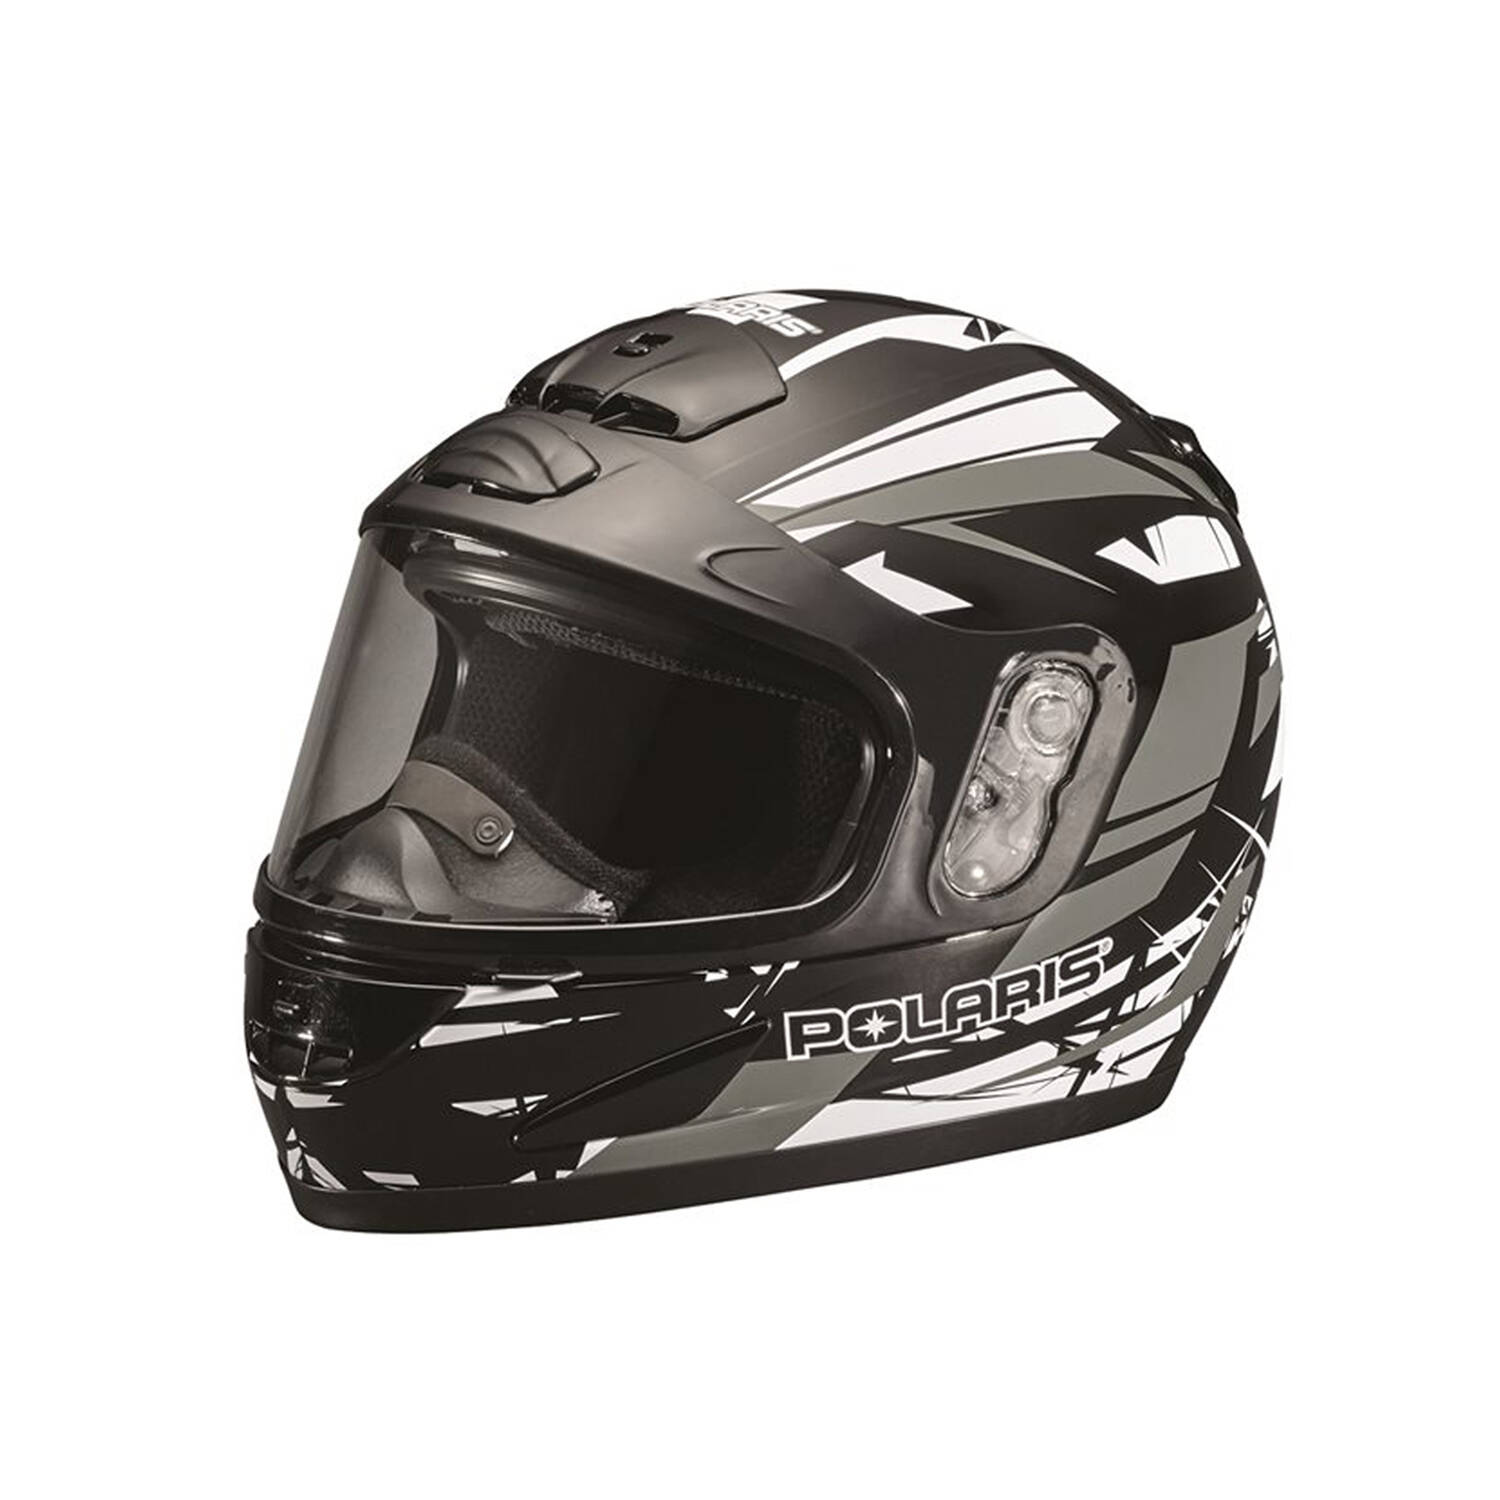 Modular Youth Helmet with Built-In Breath Deflector, Gray